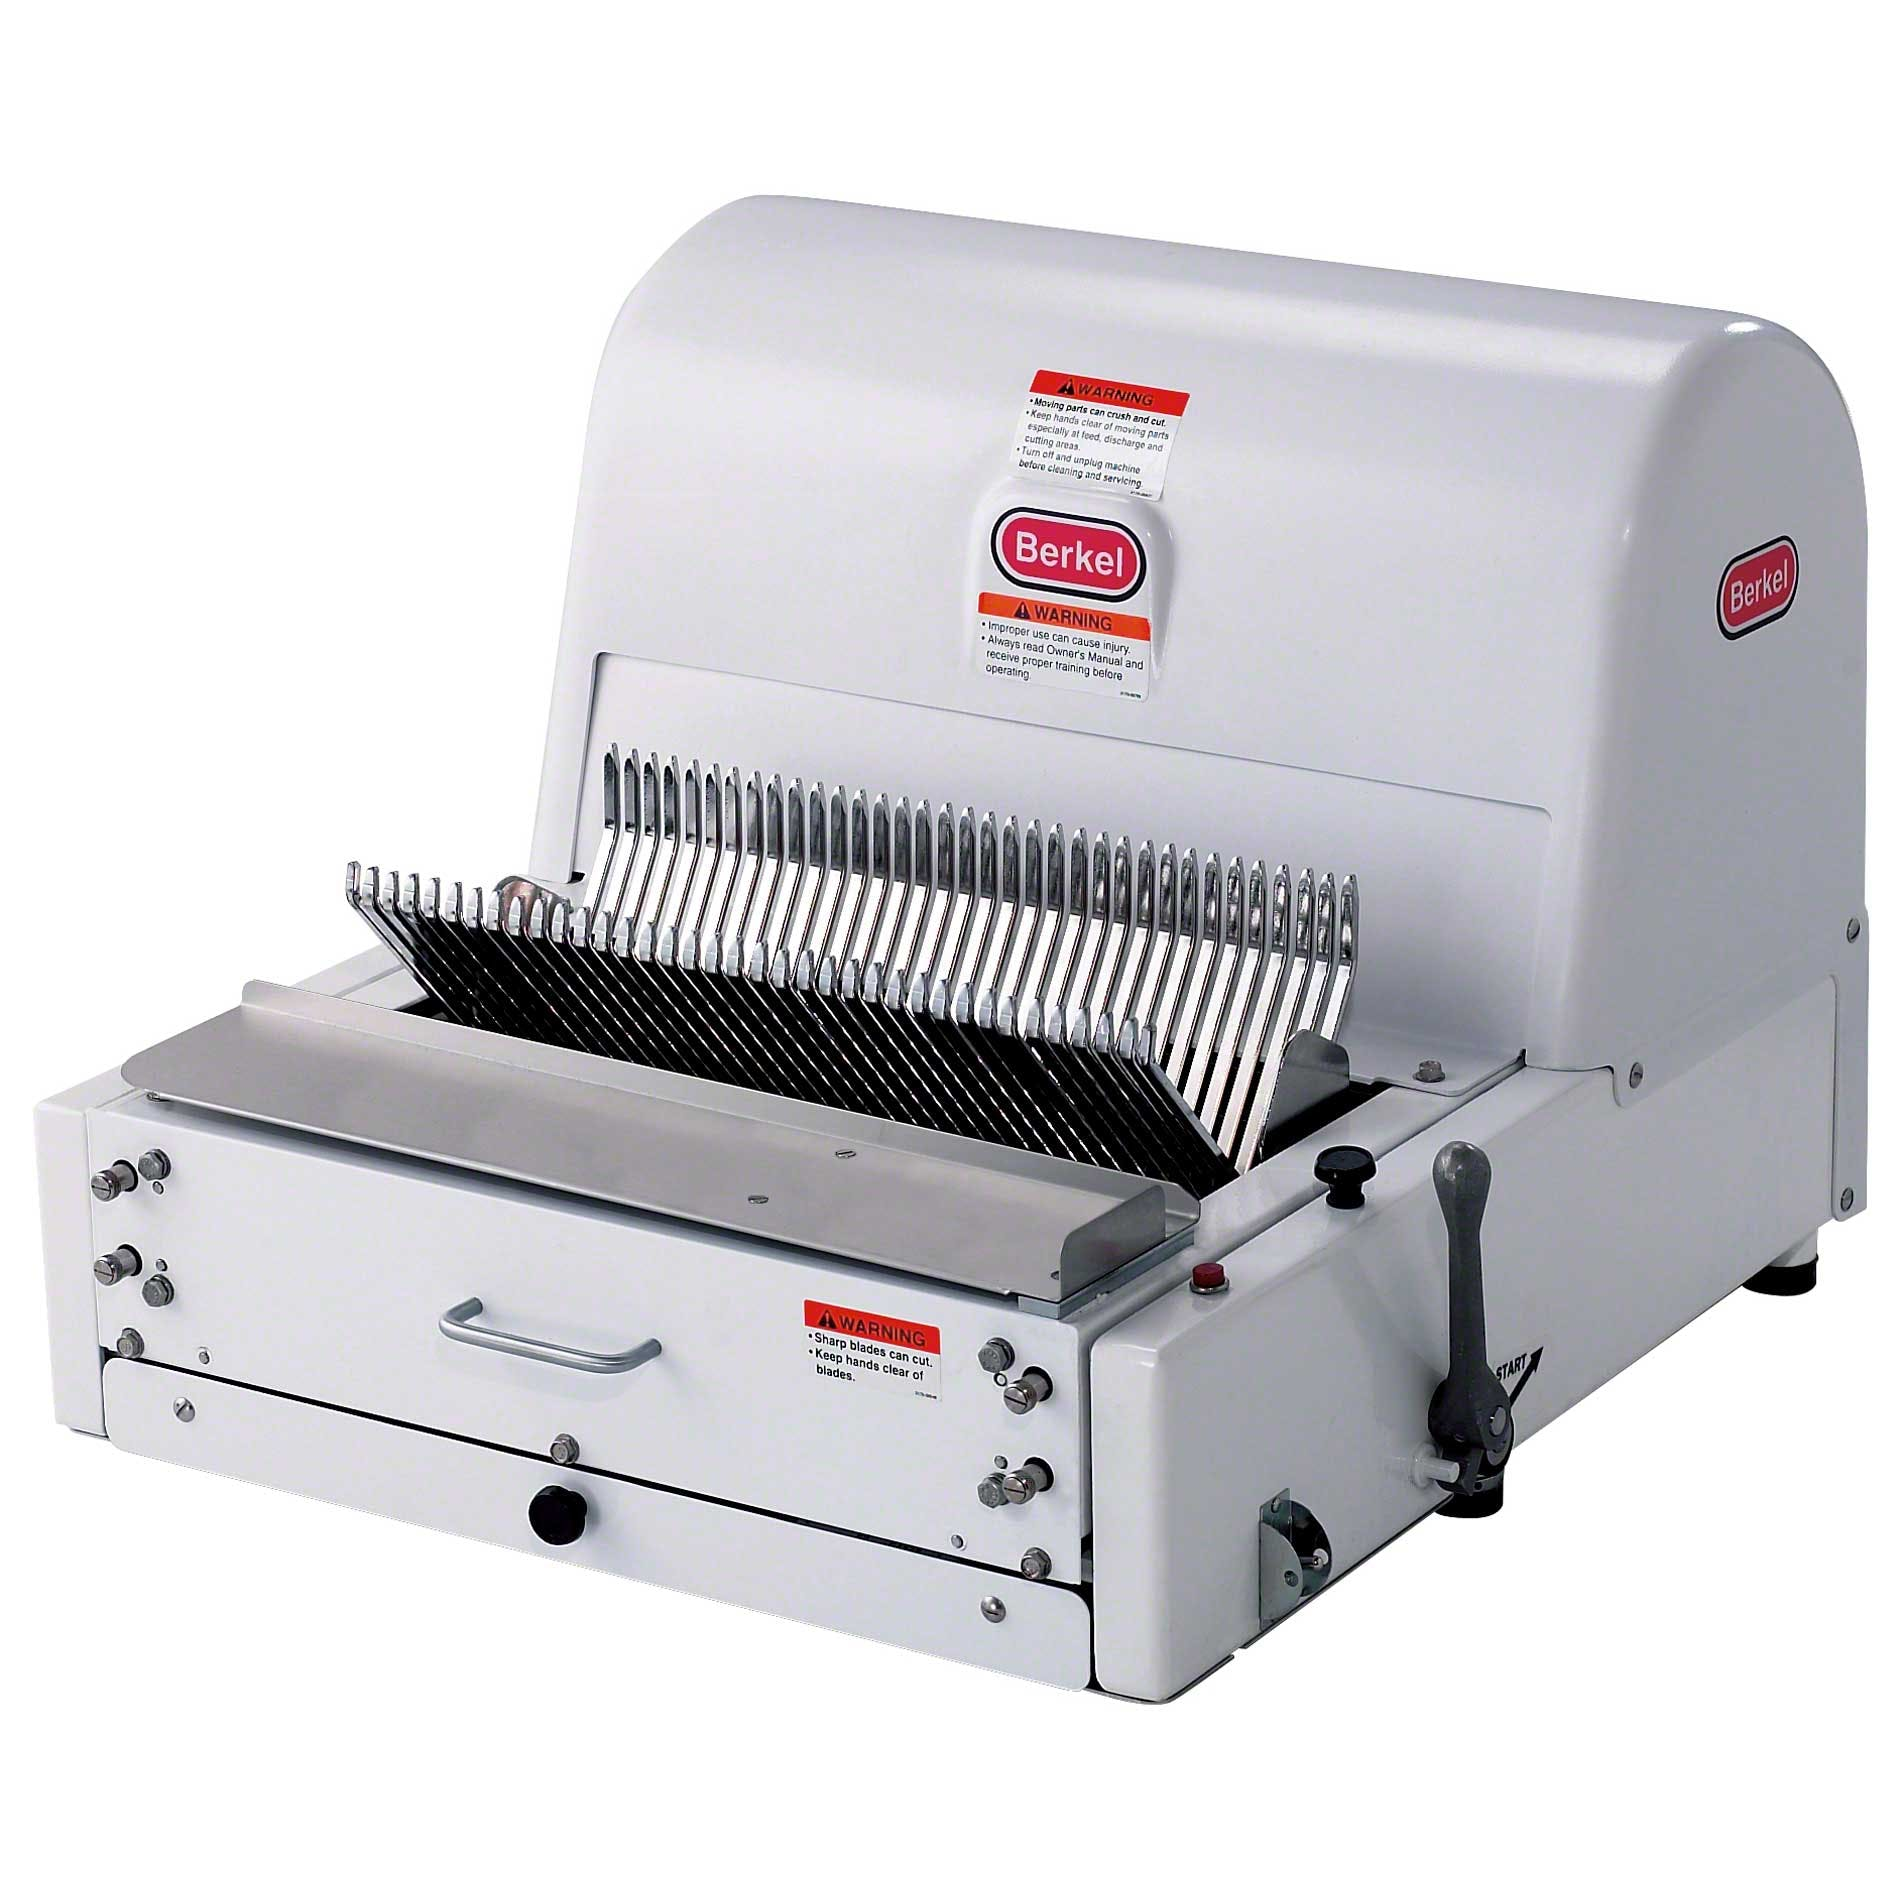 "Berkel ( MB-3/4 ) - 15-1/2"" Countertop Bread Slicer Bread slicer sold by Food Service Warehouse"